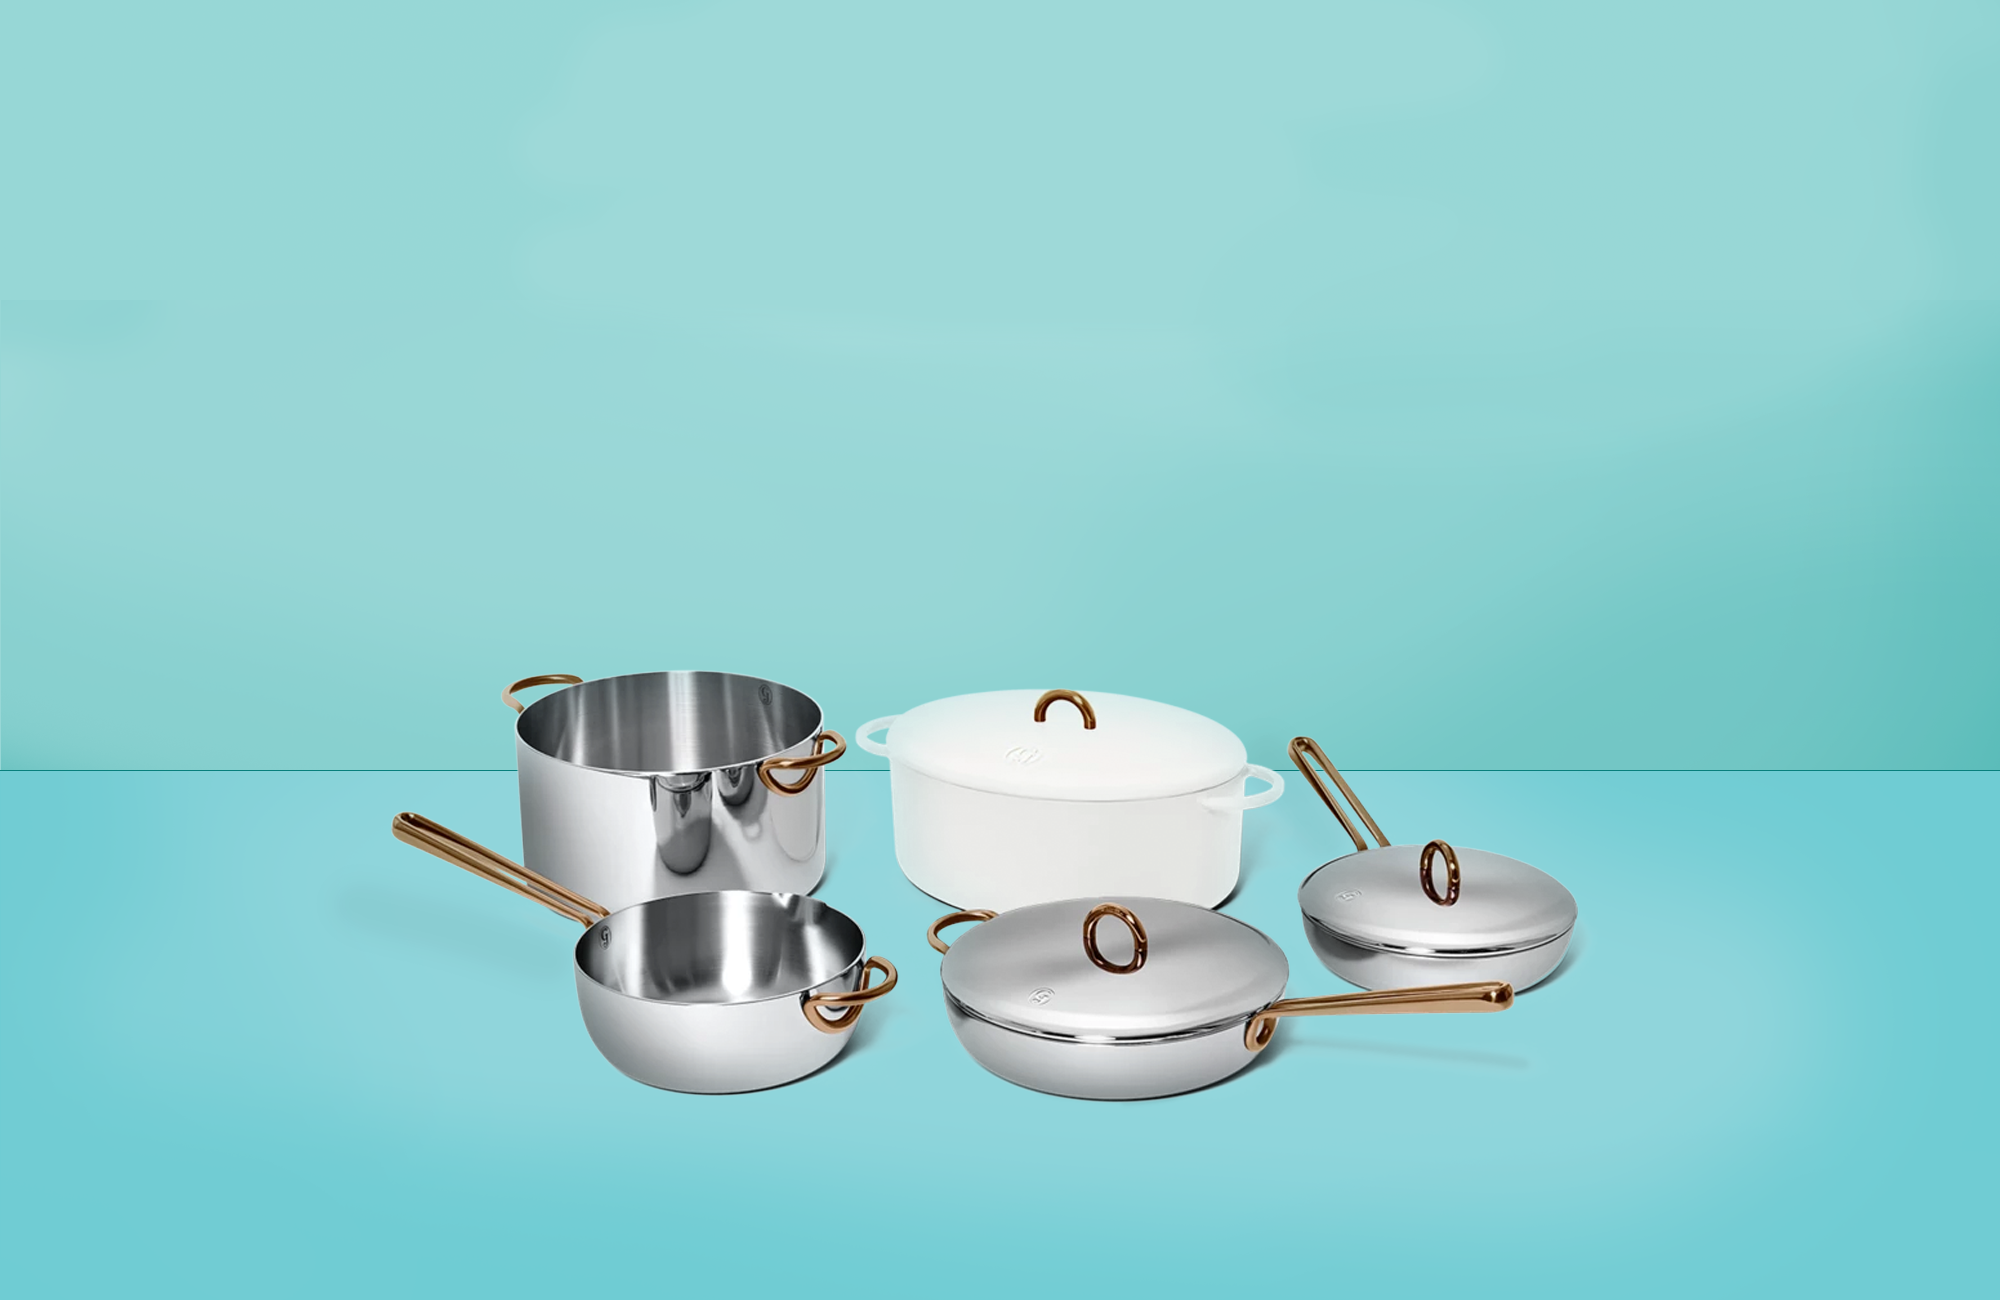 7 Best Stainless Steel Cookware Sets